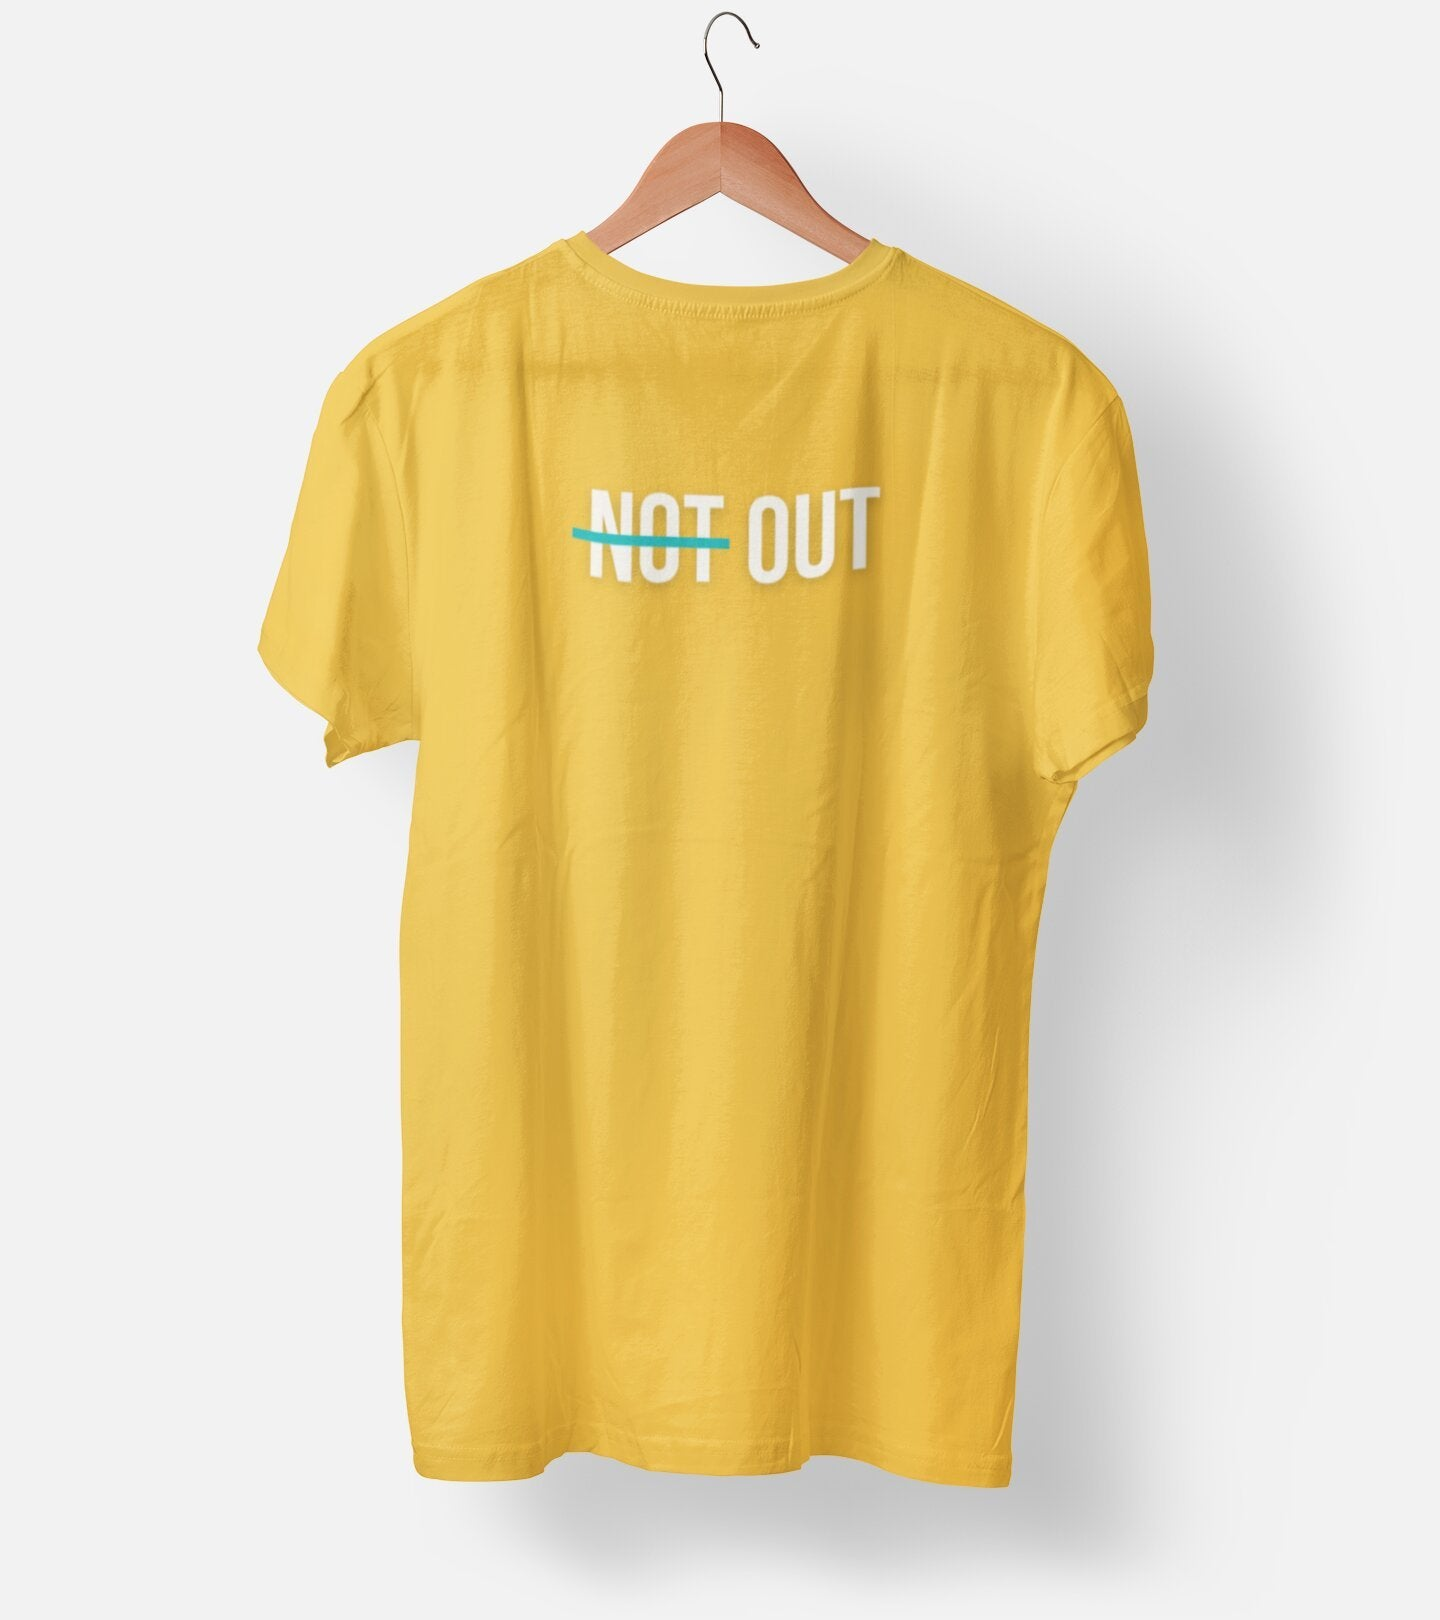 Not Out Cricket Fan Men's T-Shirt - Dekh.com